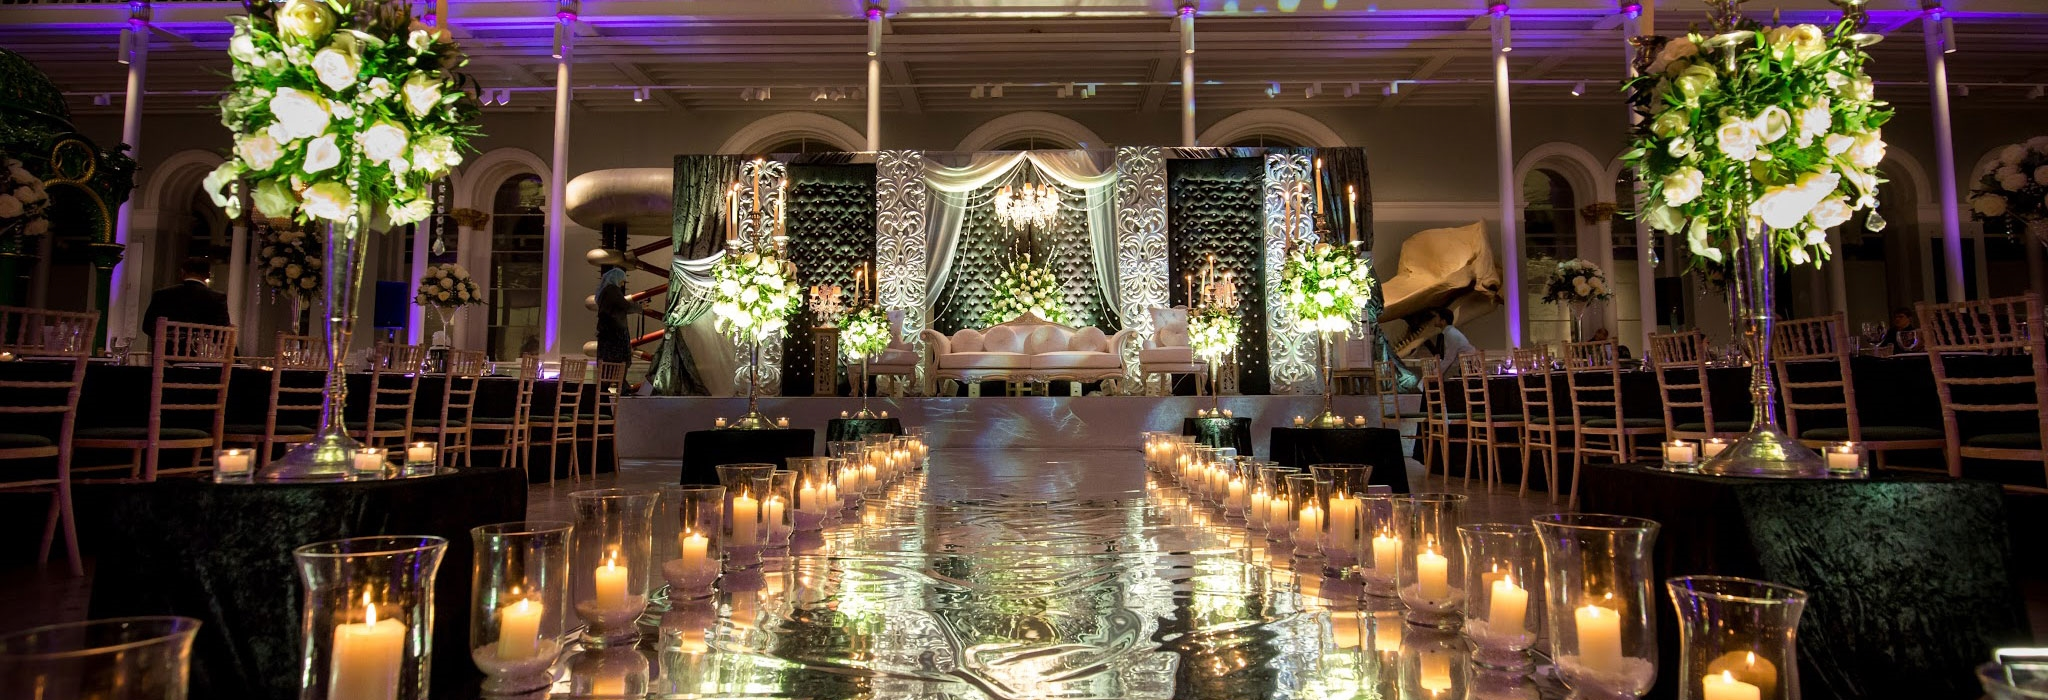 Welcome To Saffron Events Uk One Of The S Most Elished And Respected Asian Event Management Catering Companies